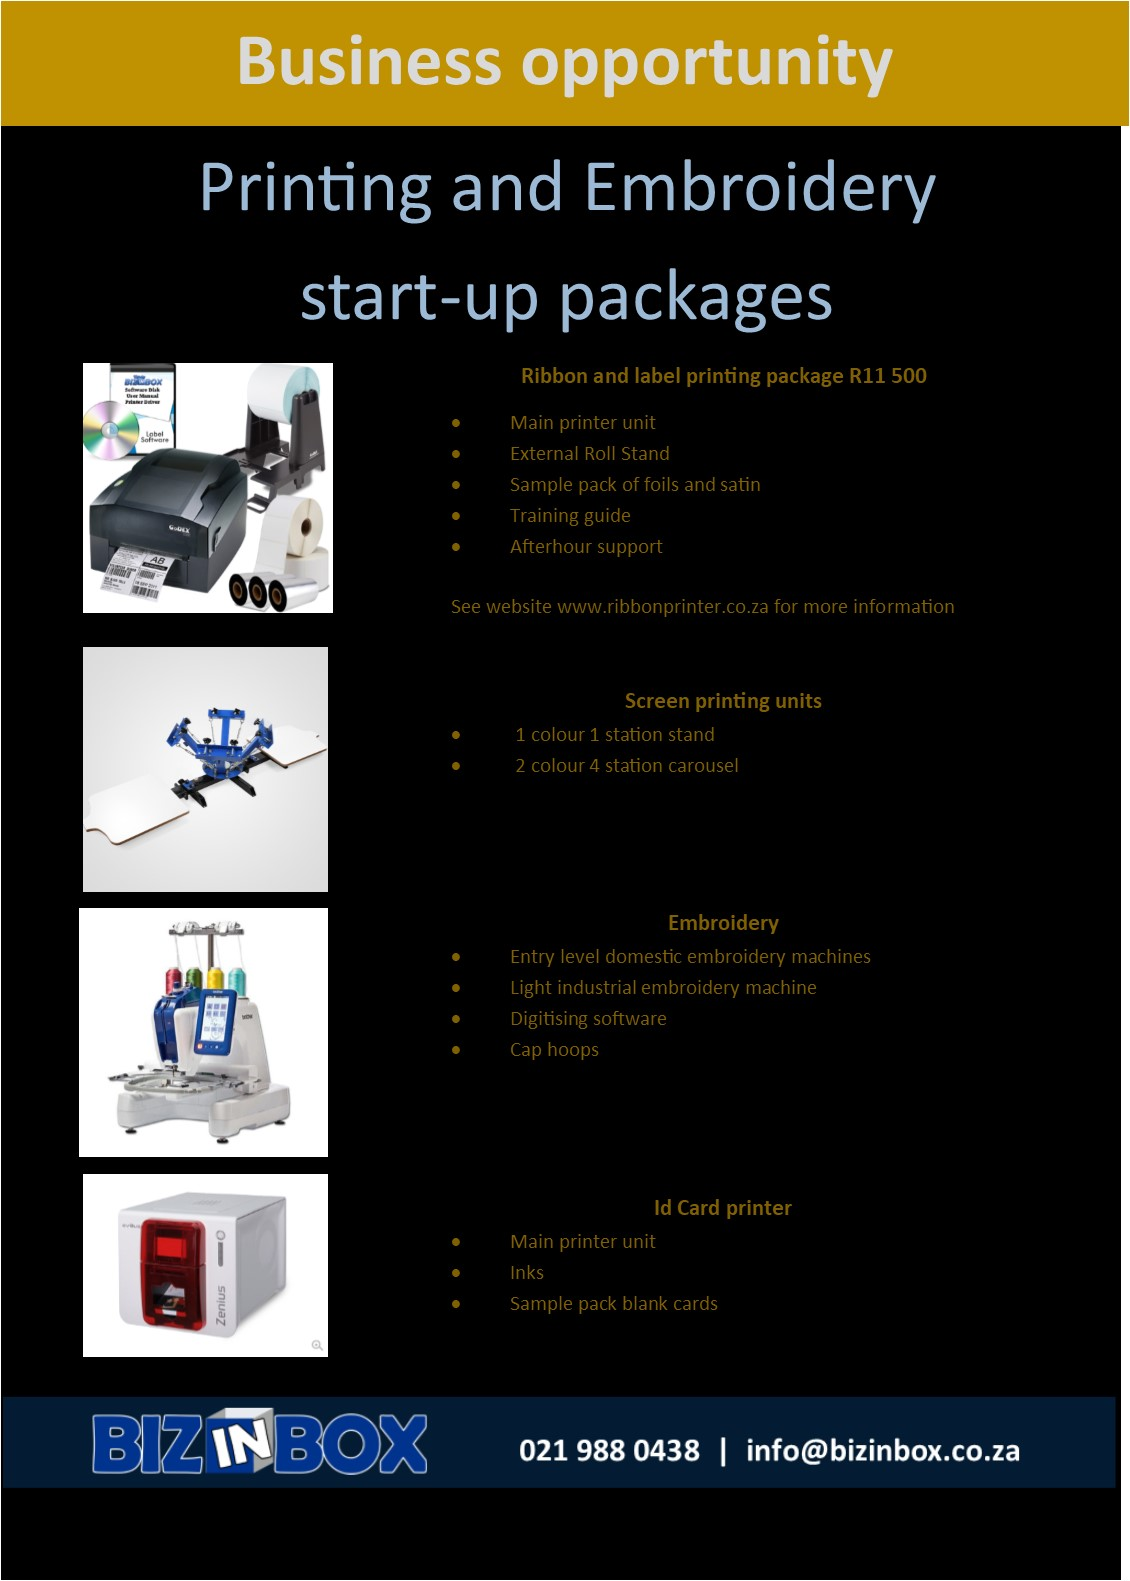 Startup business ideas - fully equipped packages